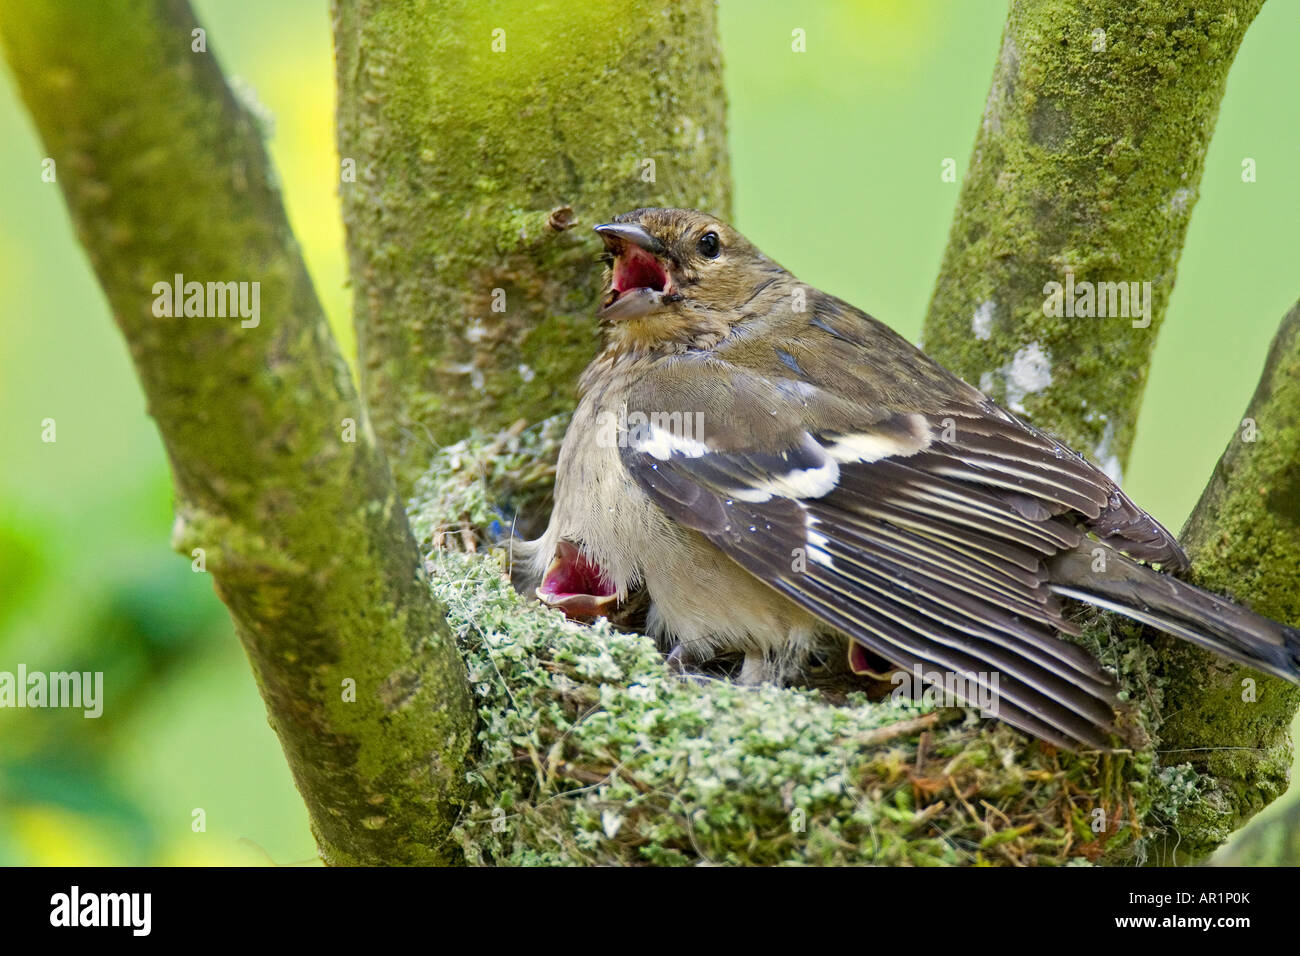 chaffinch with squabs in nest / Fringilla coelebs - Stock Image